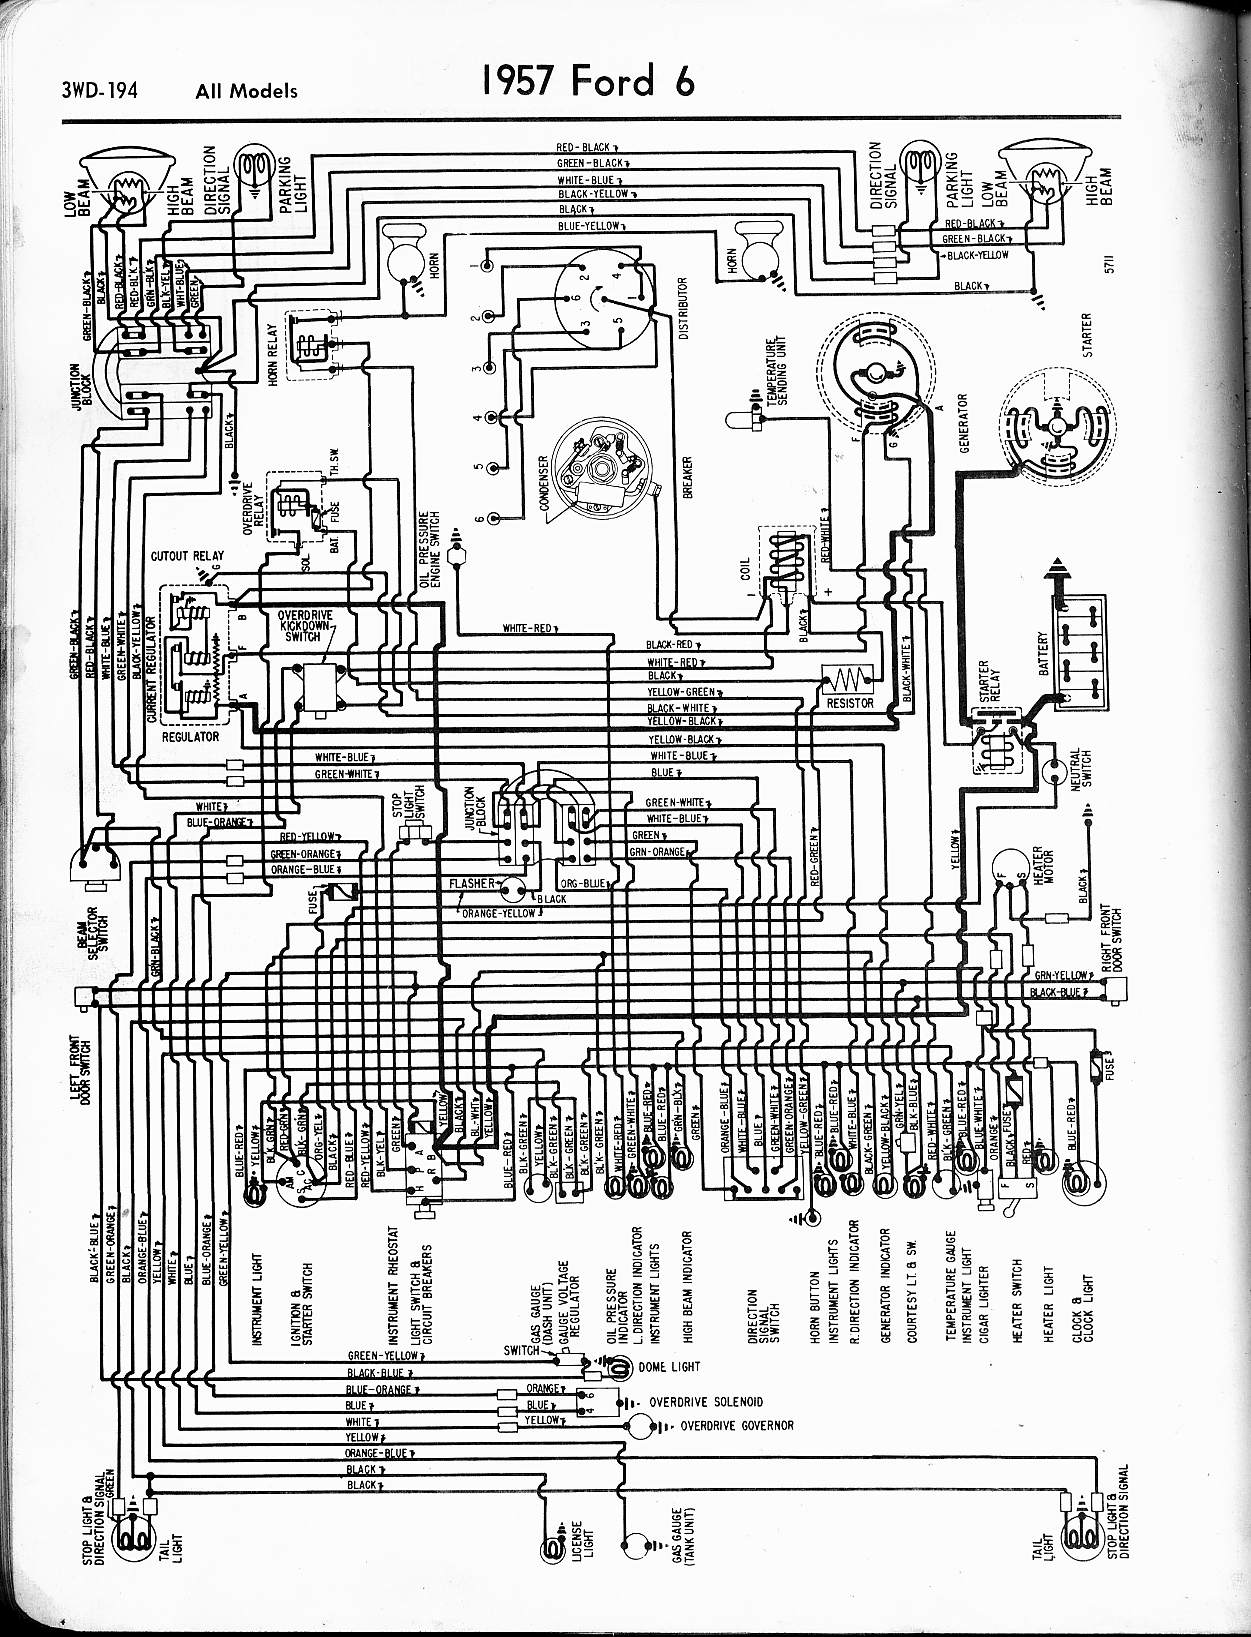 Ford Au Thermo Fan Wiring Diagram Diagrams 57 Drawing A